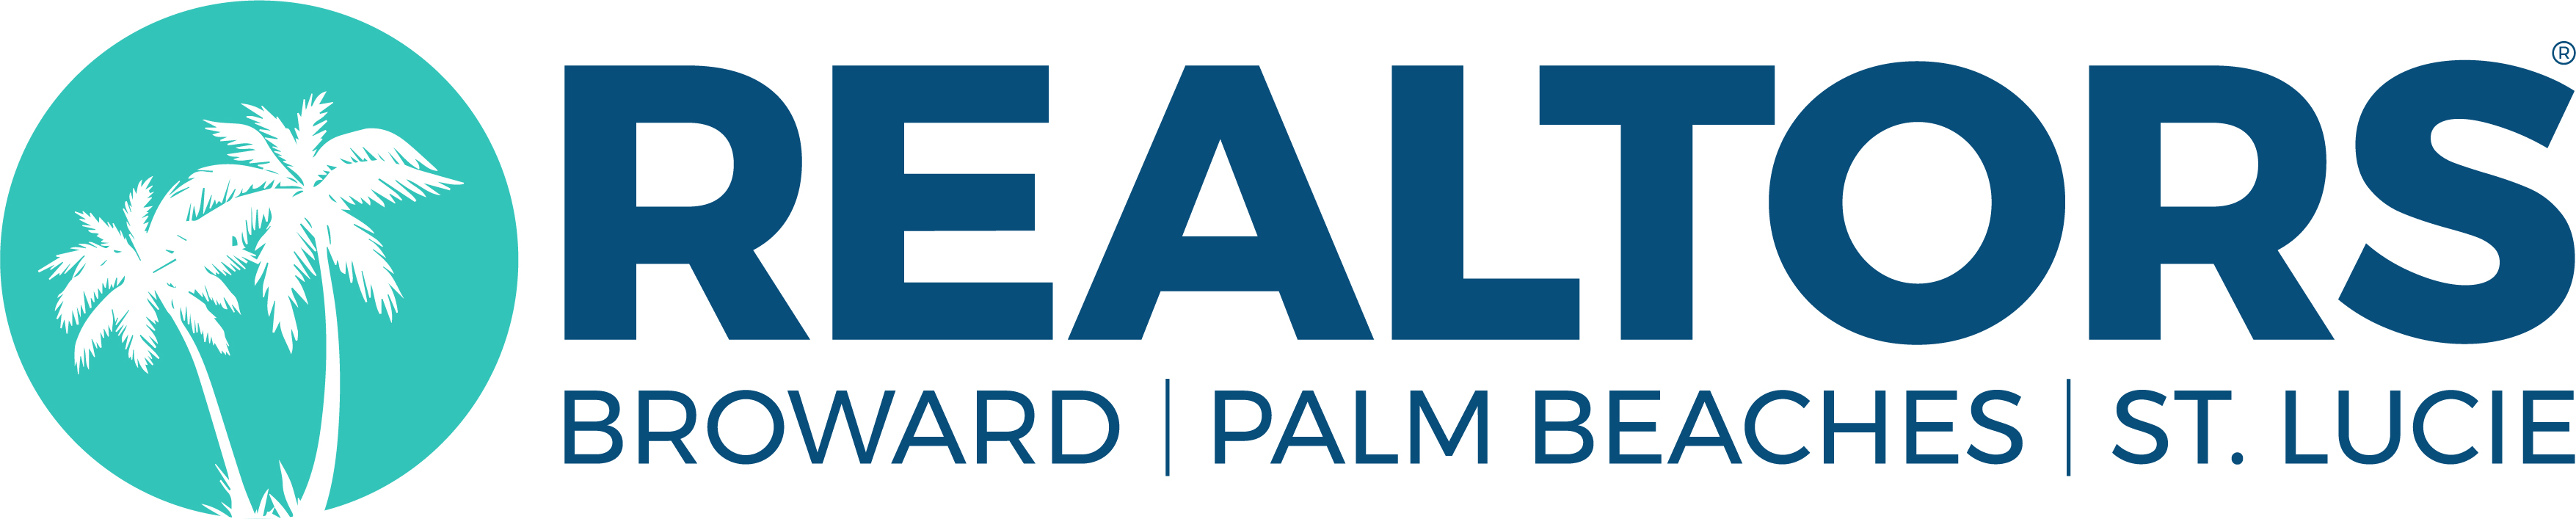 Broward Palm Beaches St Lucie Realtors (1)